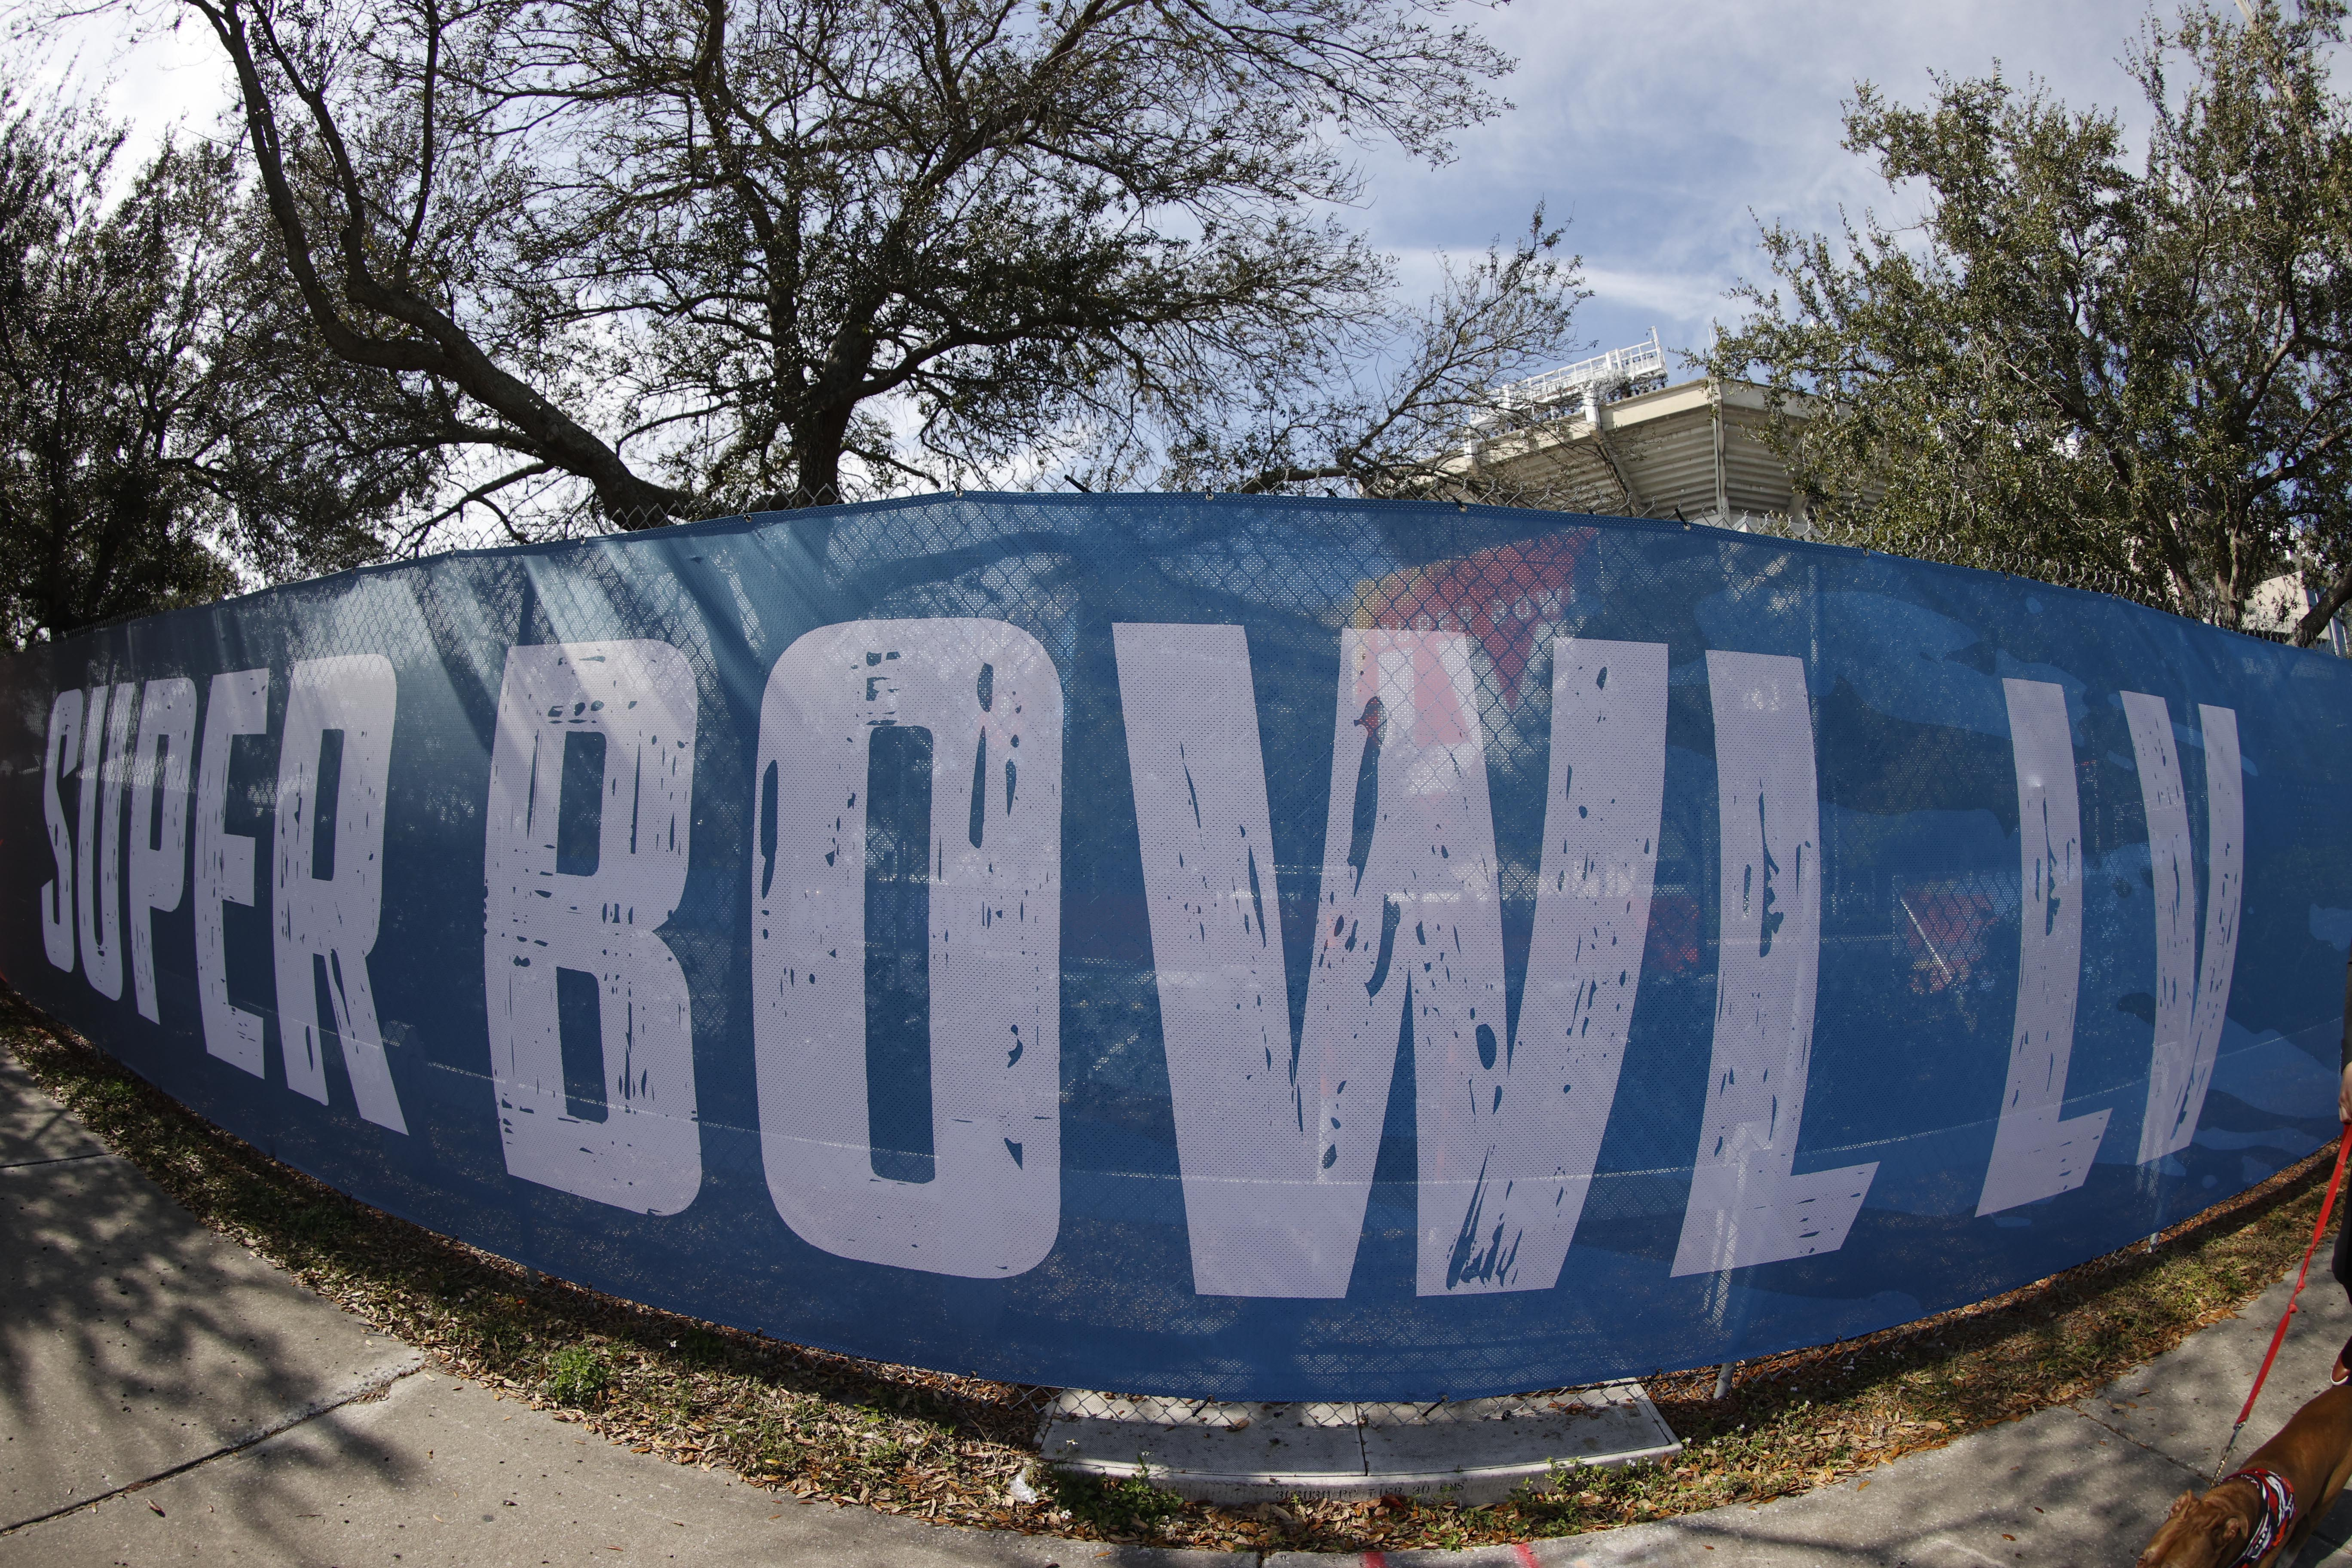 World bowls 2021 betting betting persimmons for sale